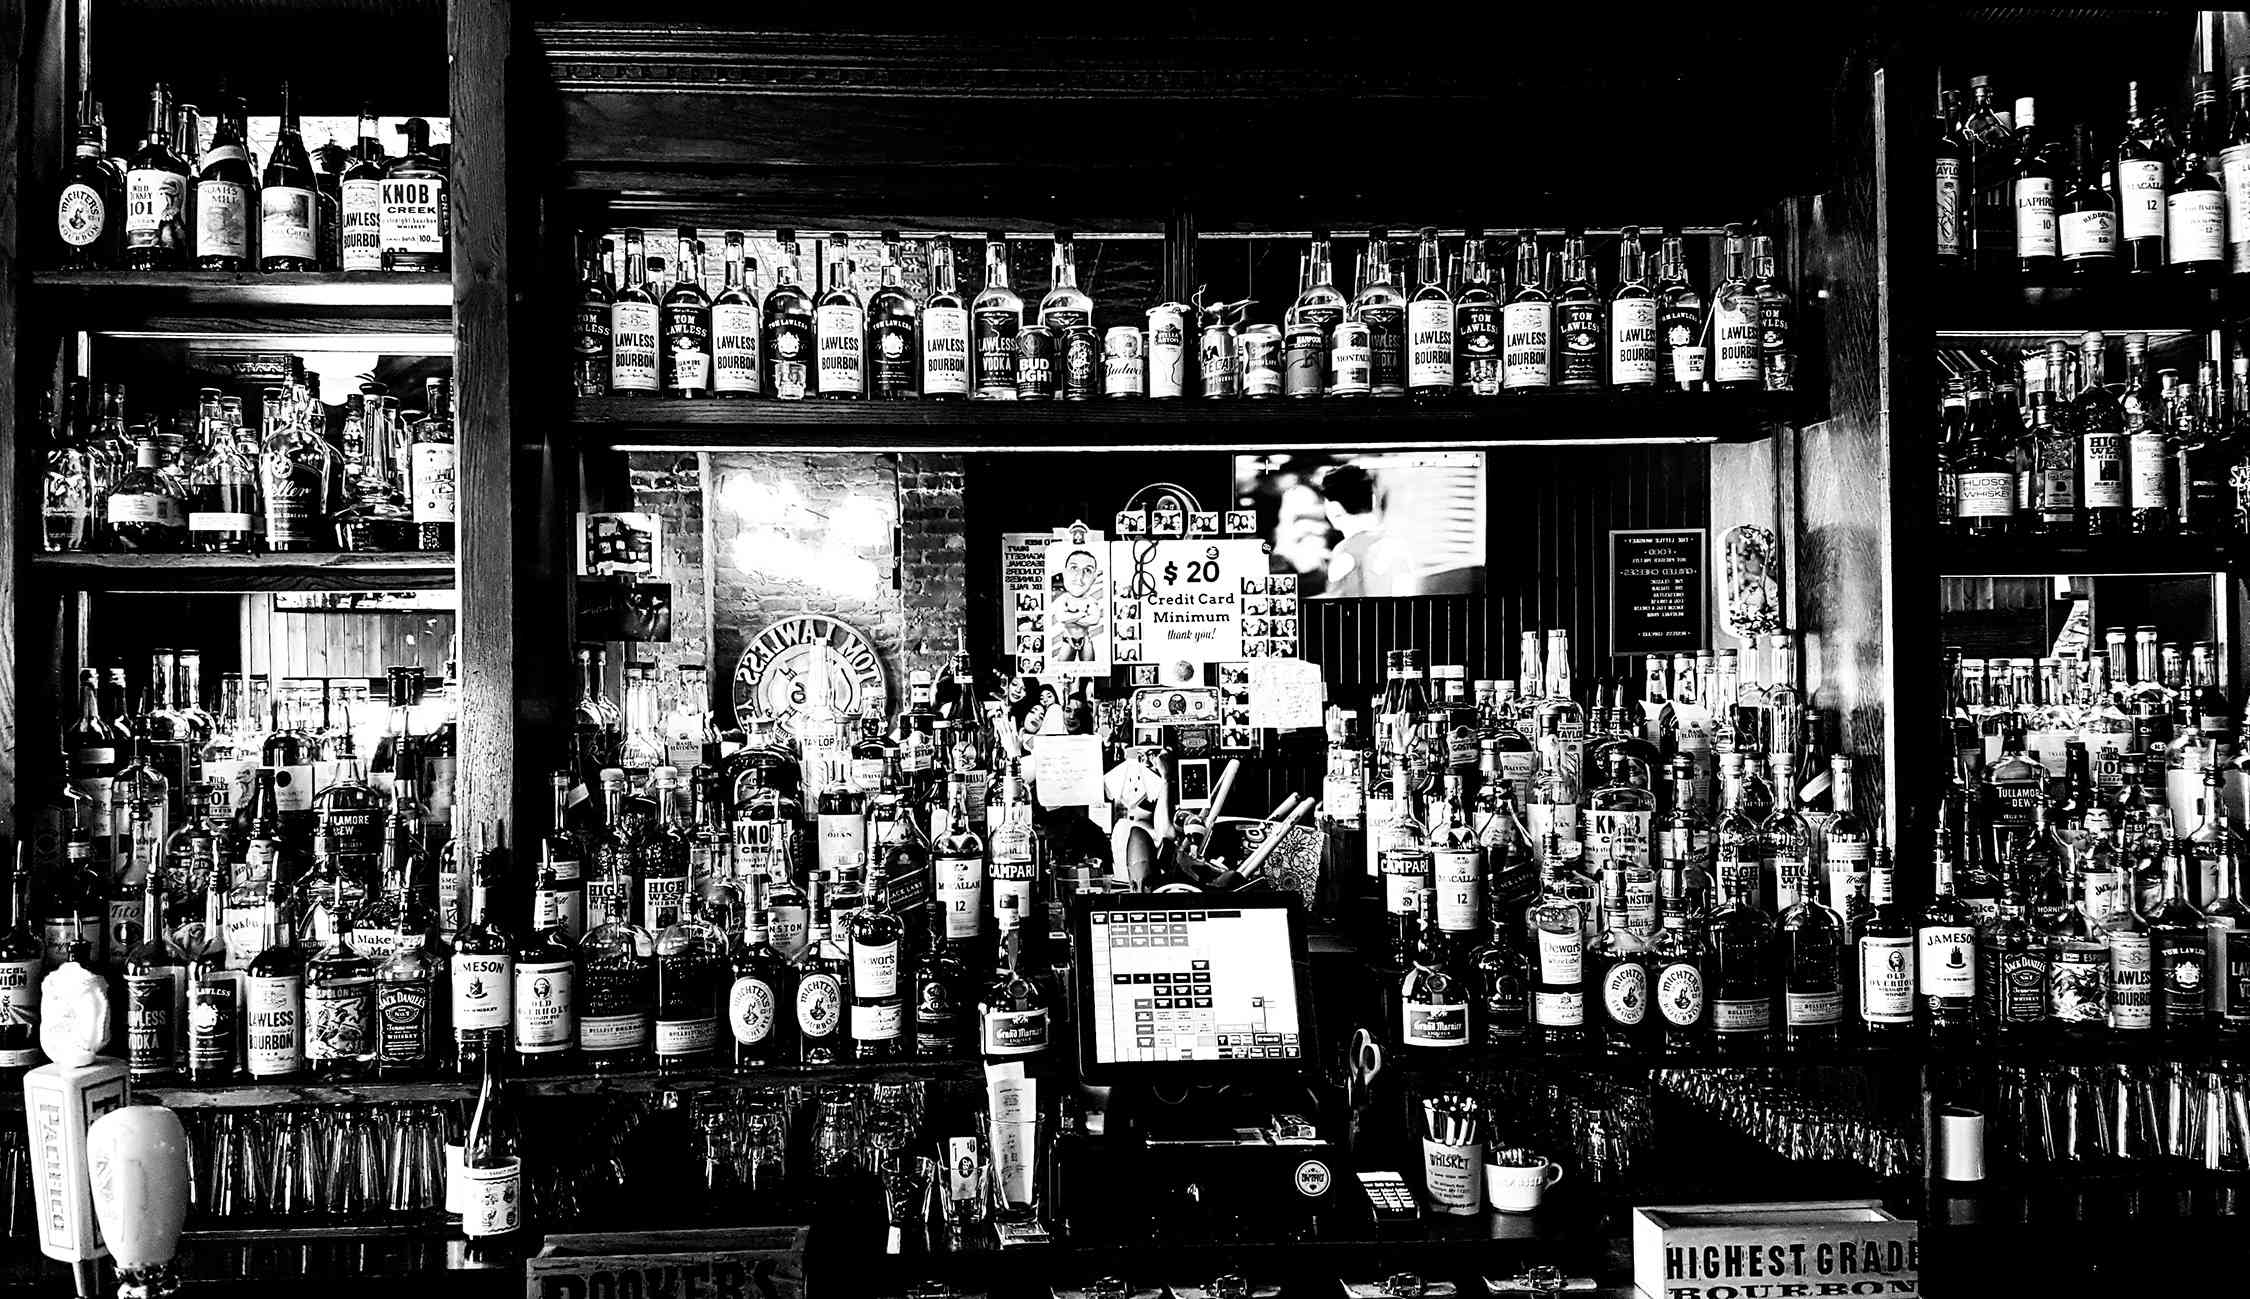 black and white image of the liqour bottles at Little Whiskey Bar